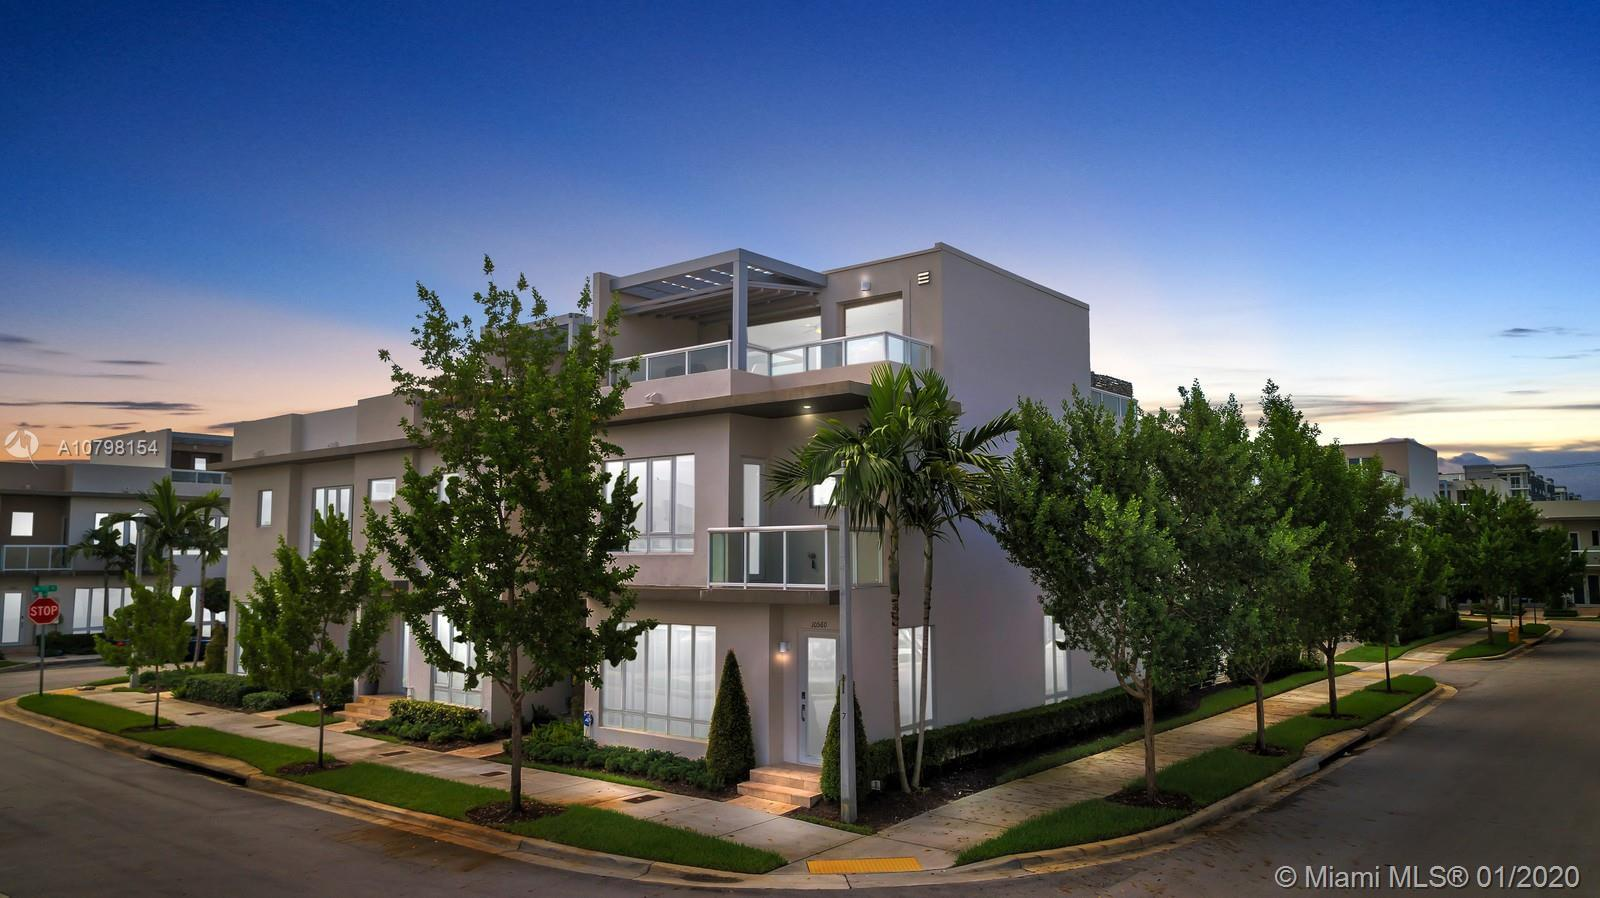 Spectacular and luxurious three-story 4 bedrooms 3 and a half bathrooms townhome plus a NEXTGEN with